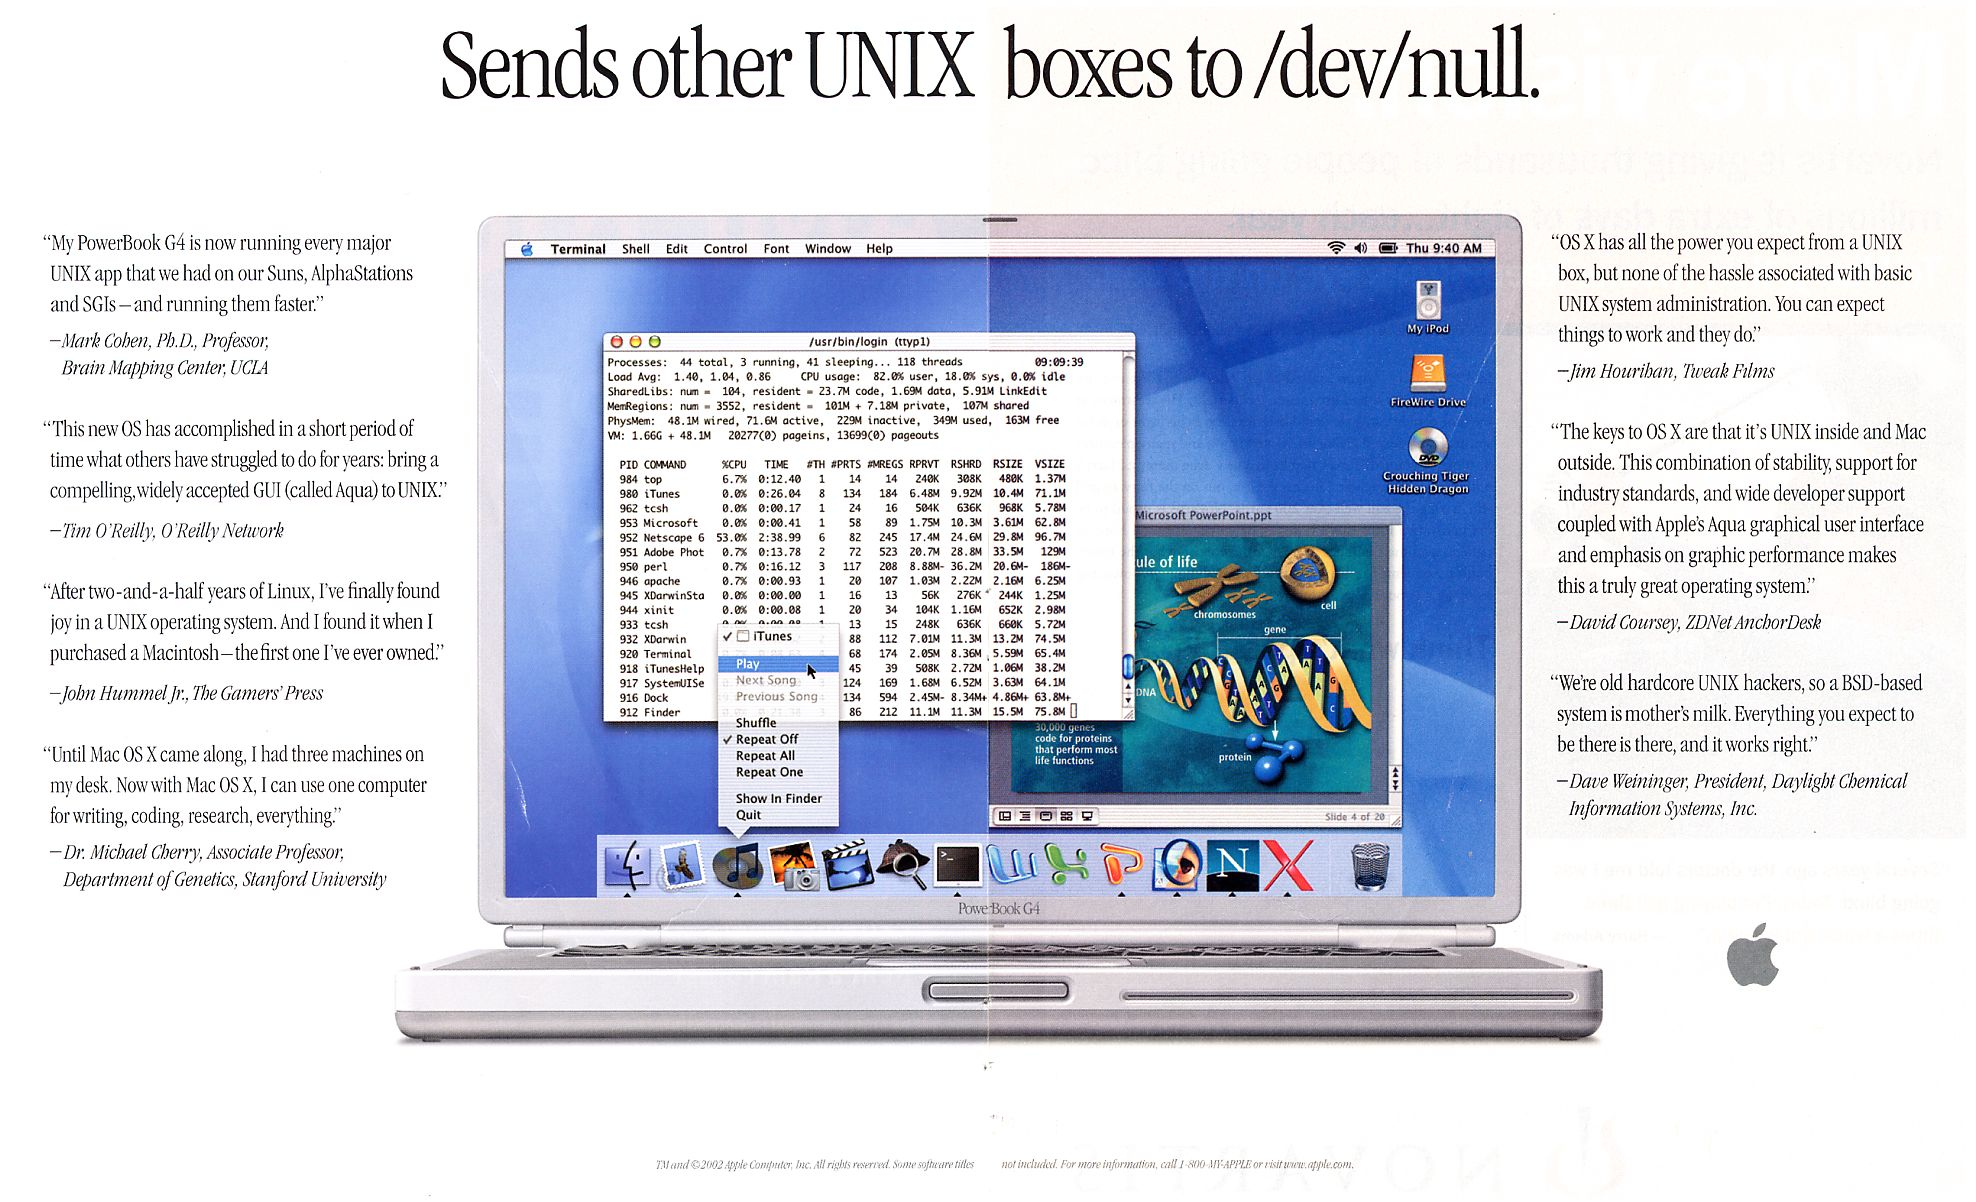 apple_unix_ad.jpg